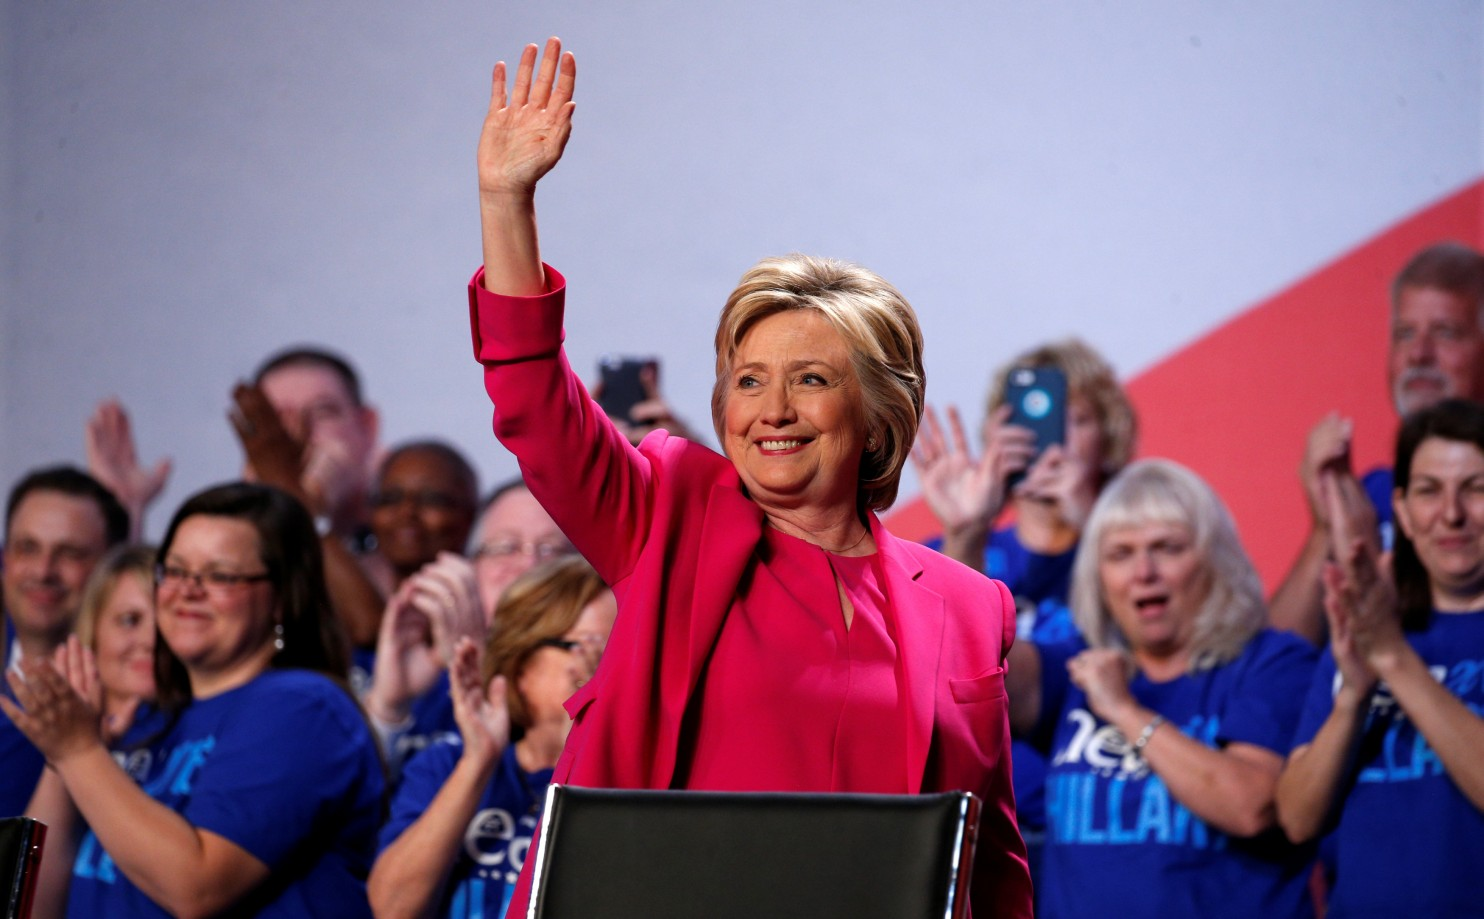 2016-07-05t165945z_01_was210_rtridsp_3_usa-election-clinton-2762